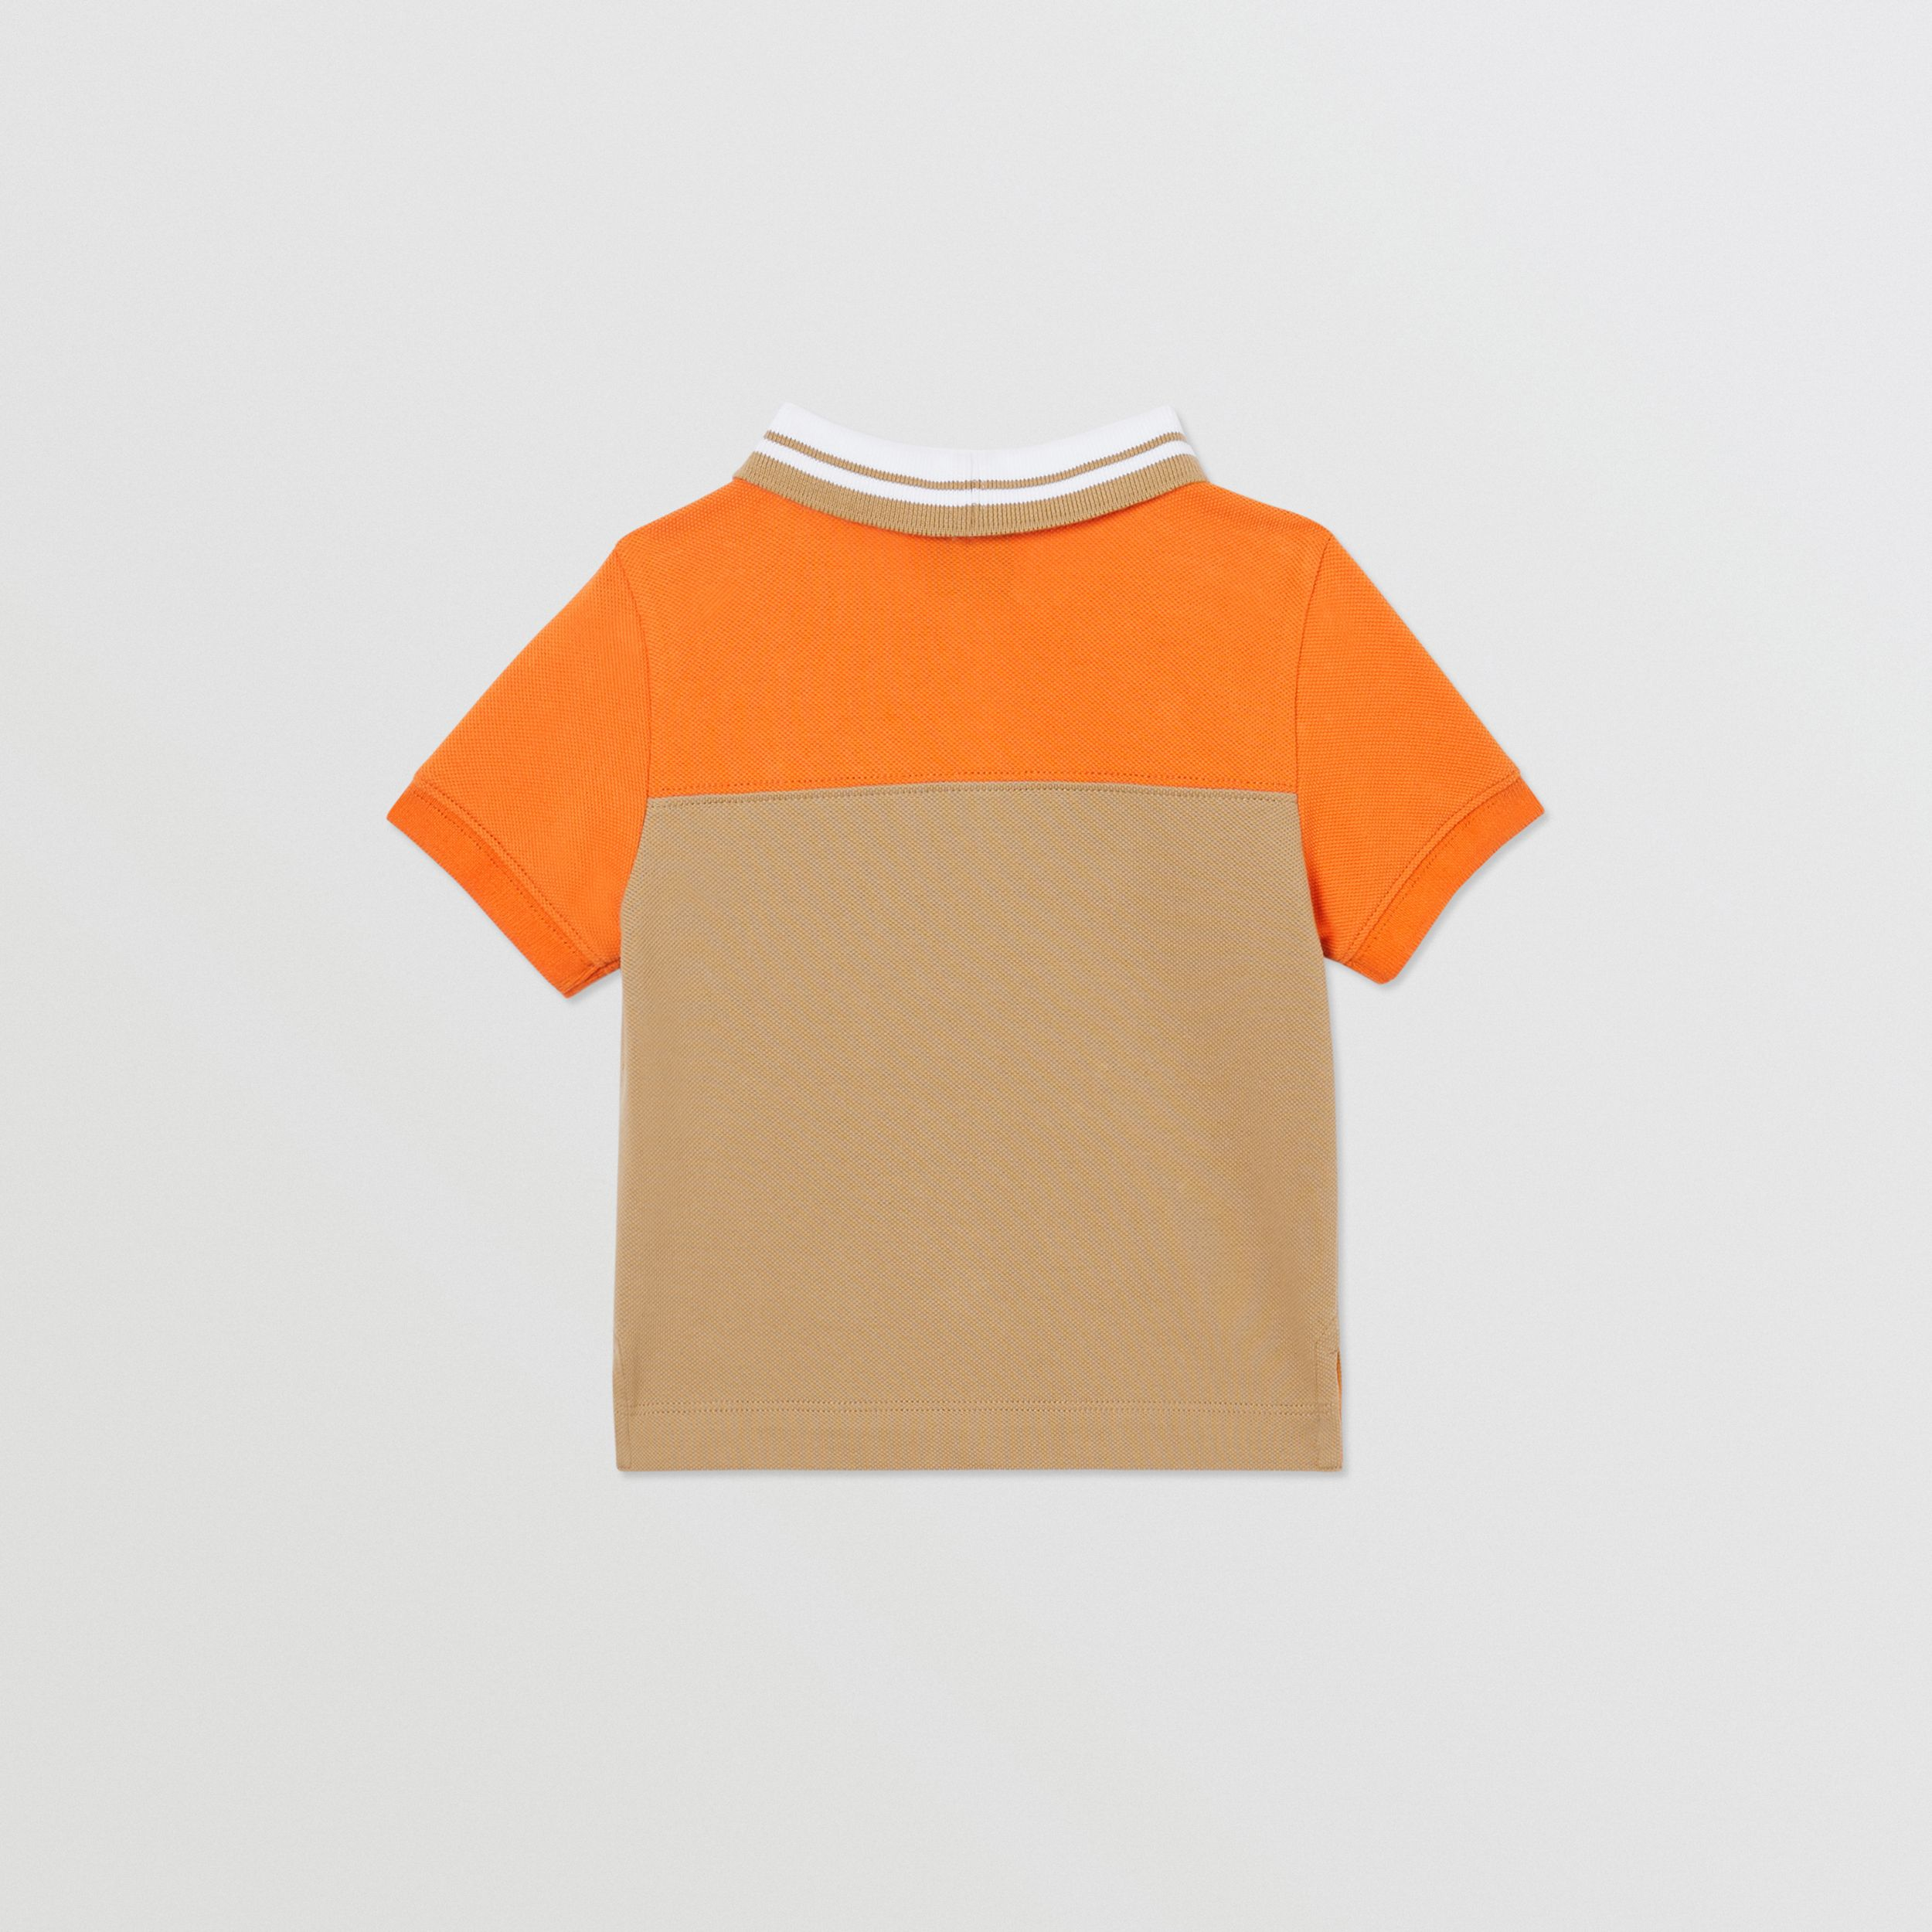 Colour Block Cotton Piqué Polo Shirt in Bright Mandarin - Children | Burberry - 4